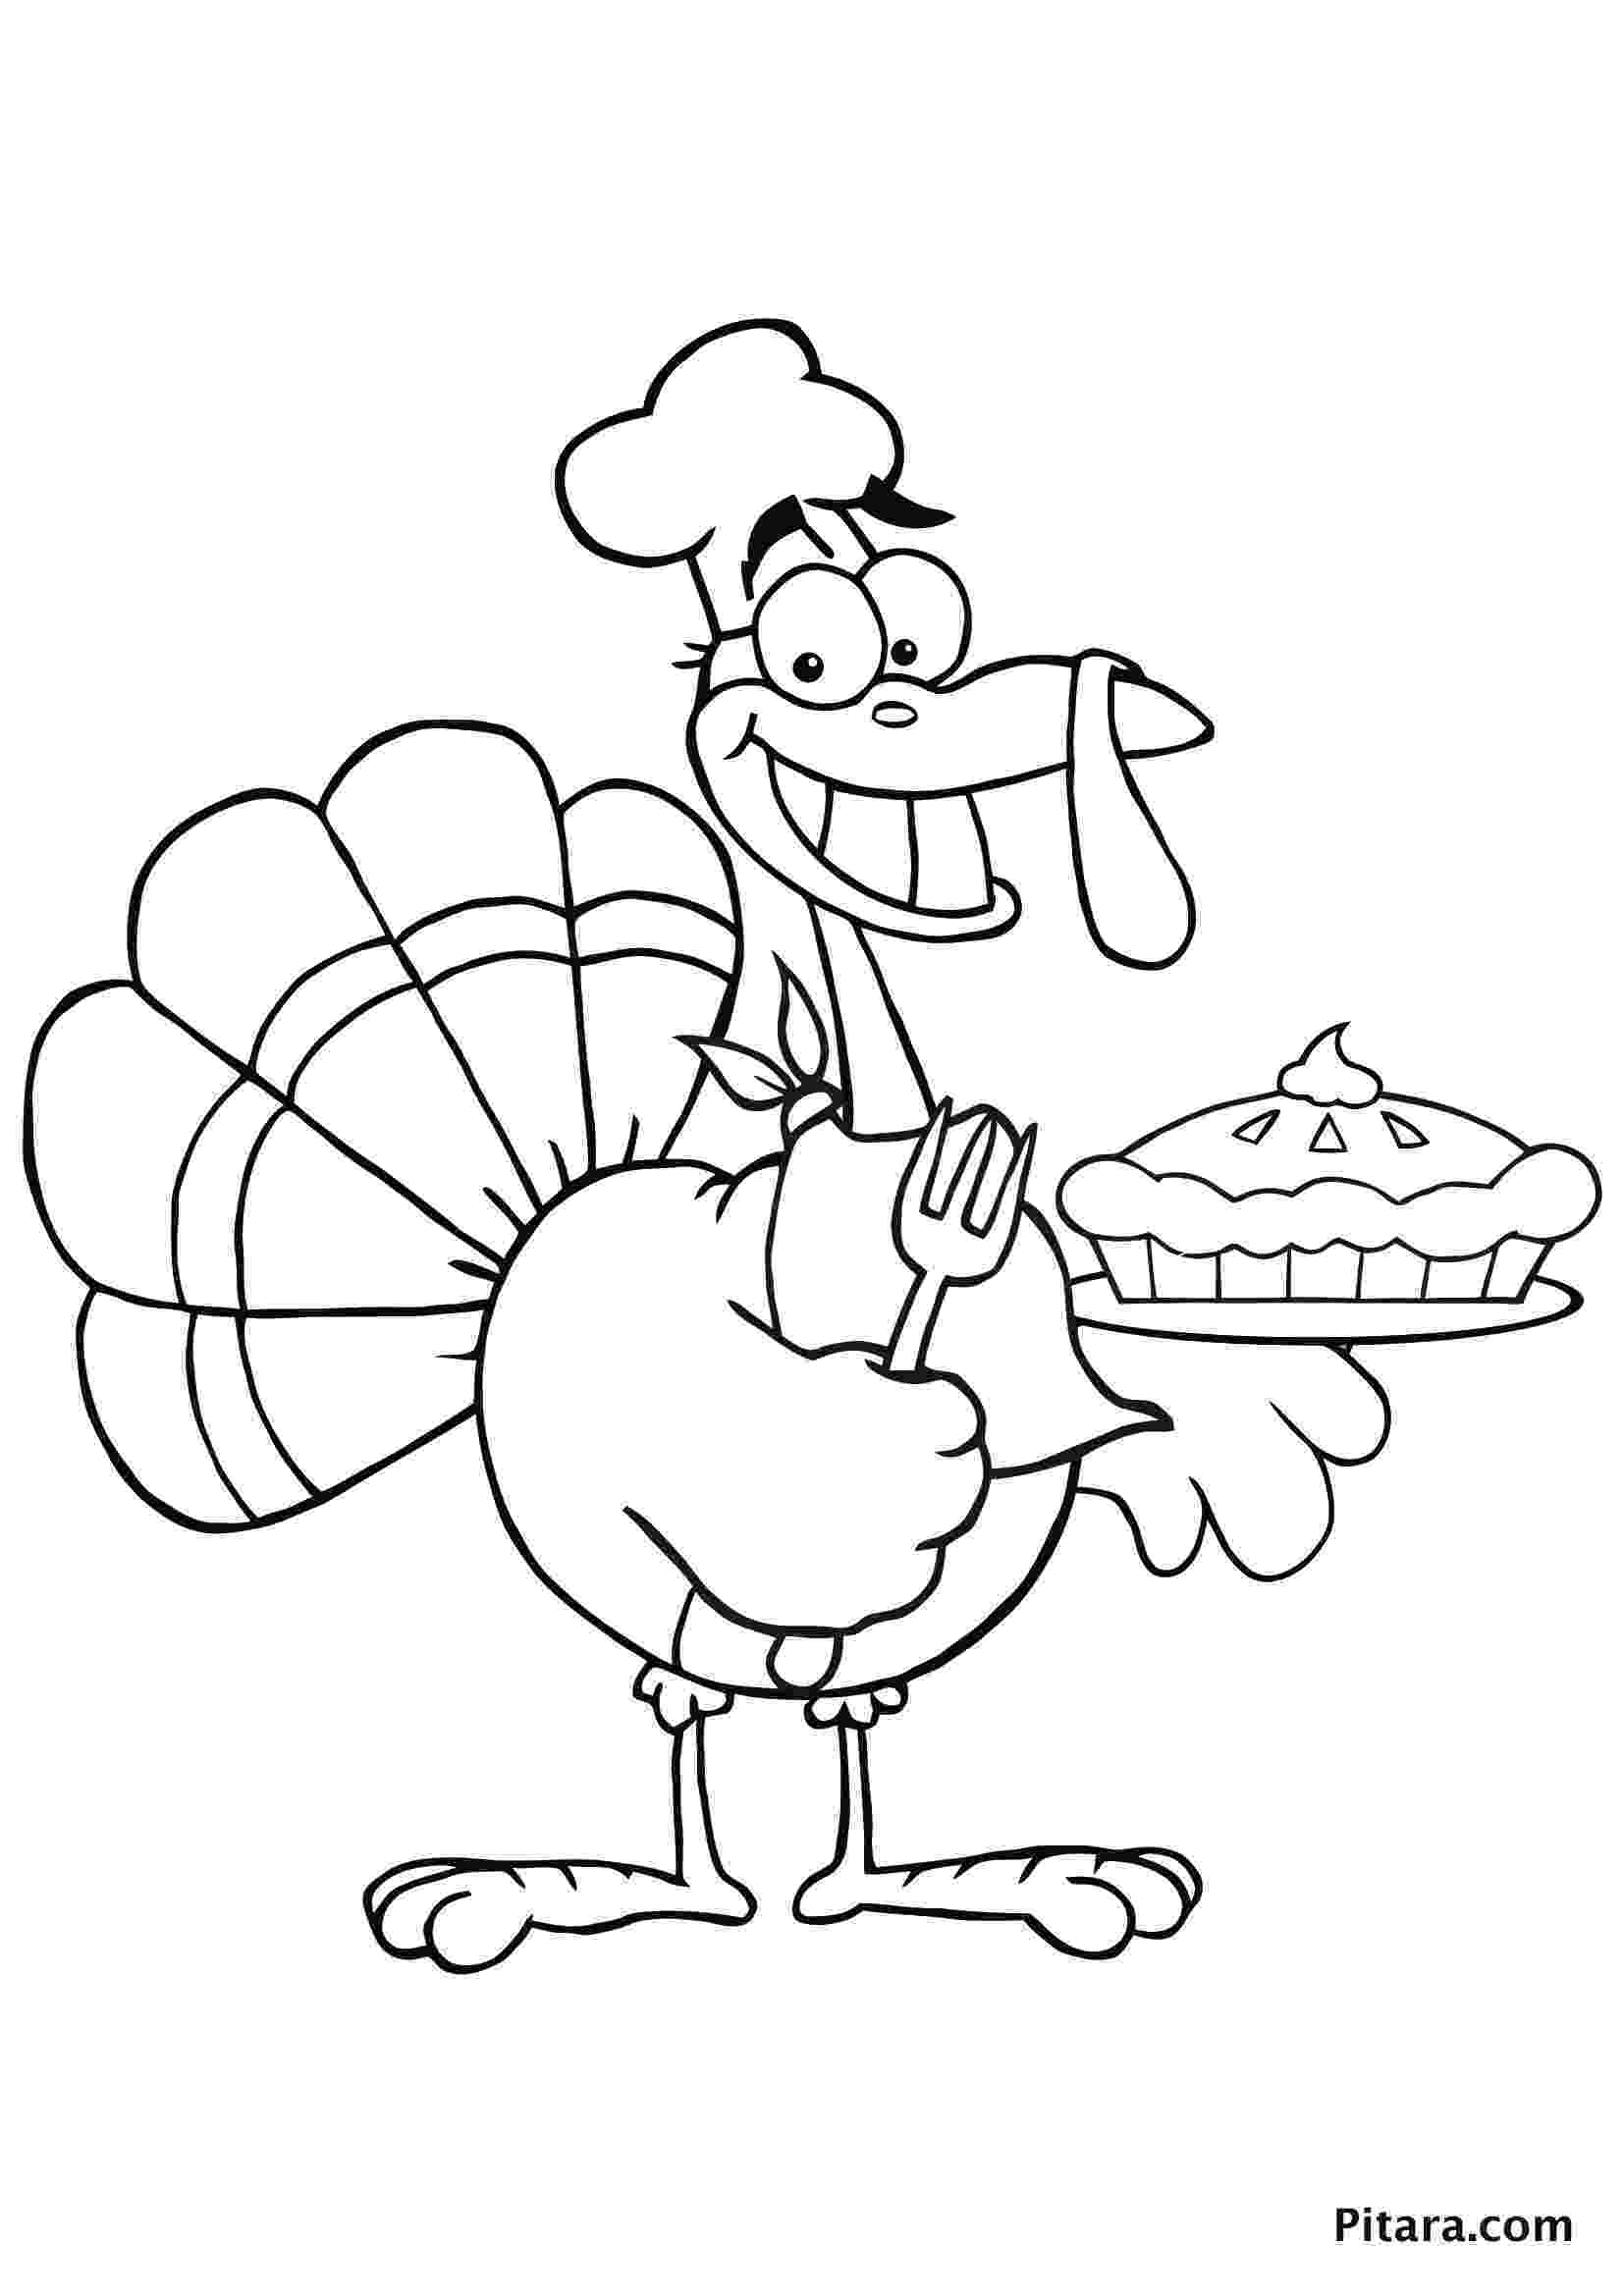 coloring pages turkey turkey coloring pages for kids pitara kids network turkey coloring pages